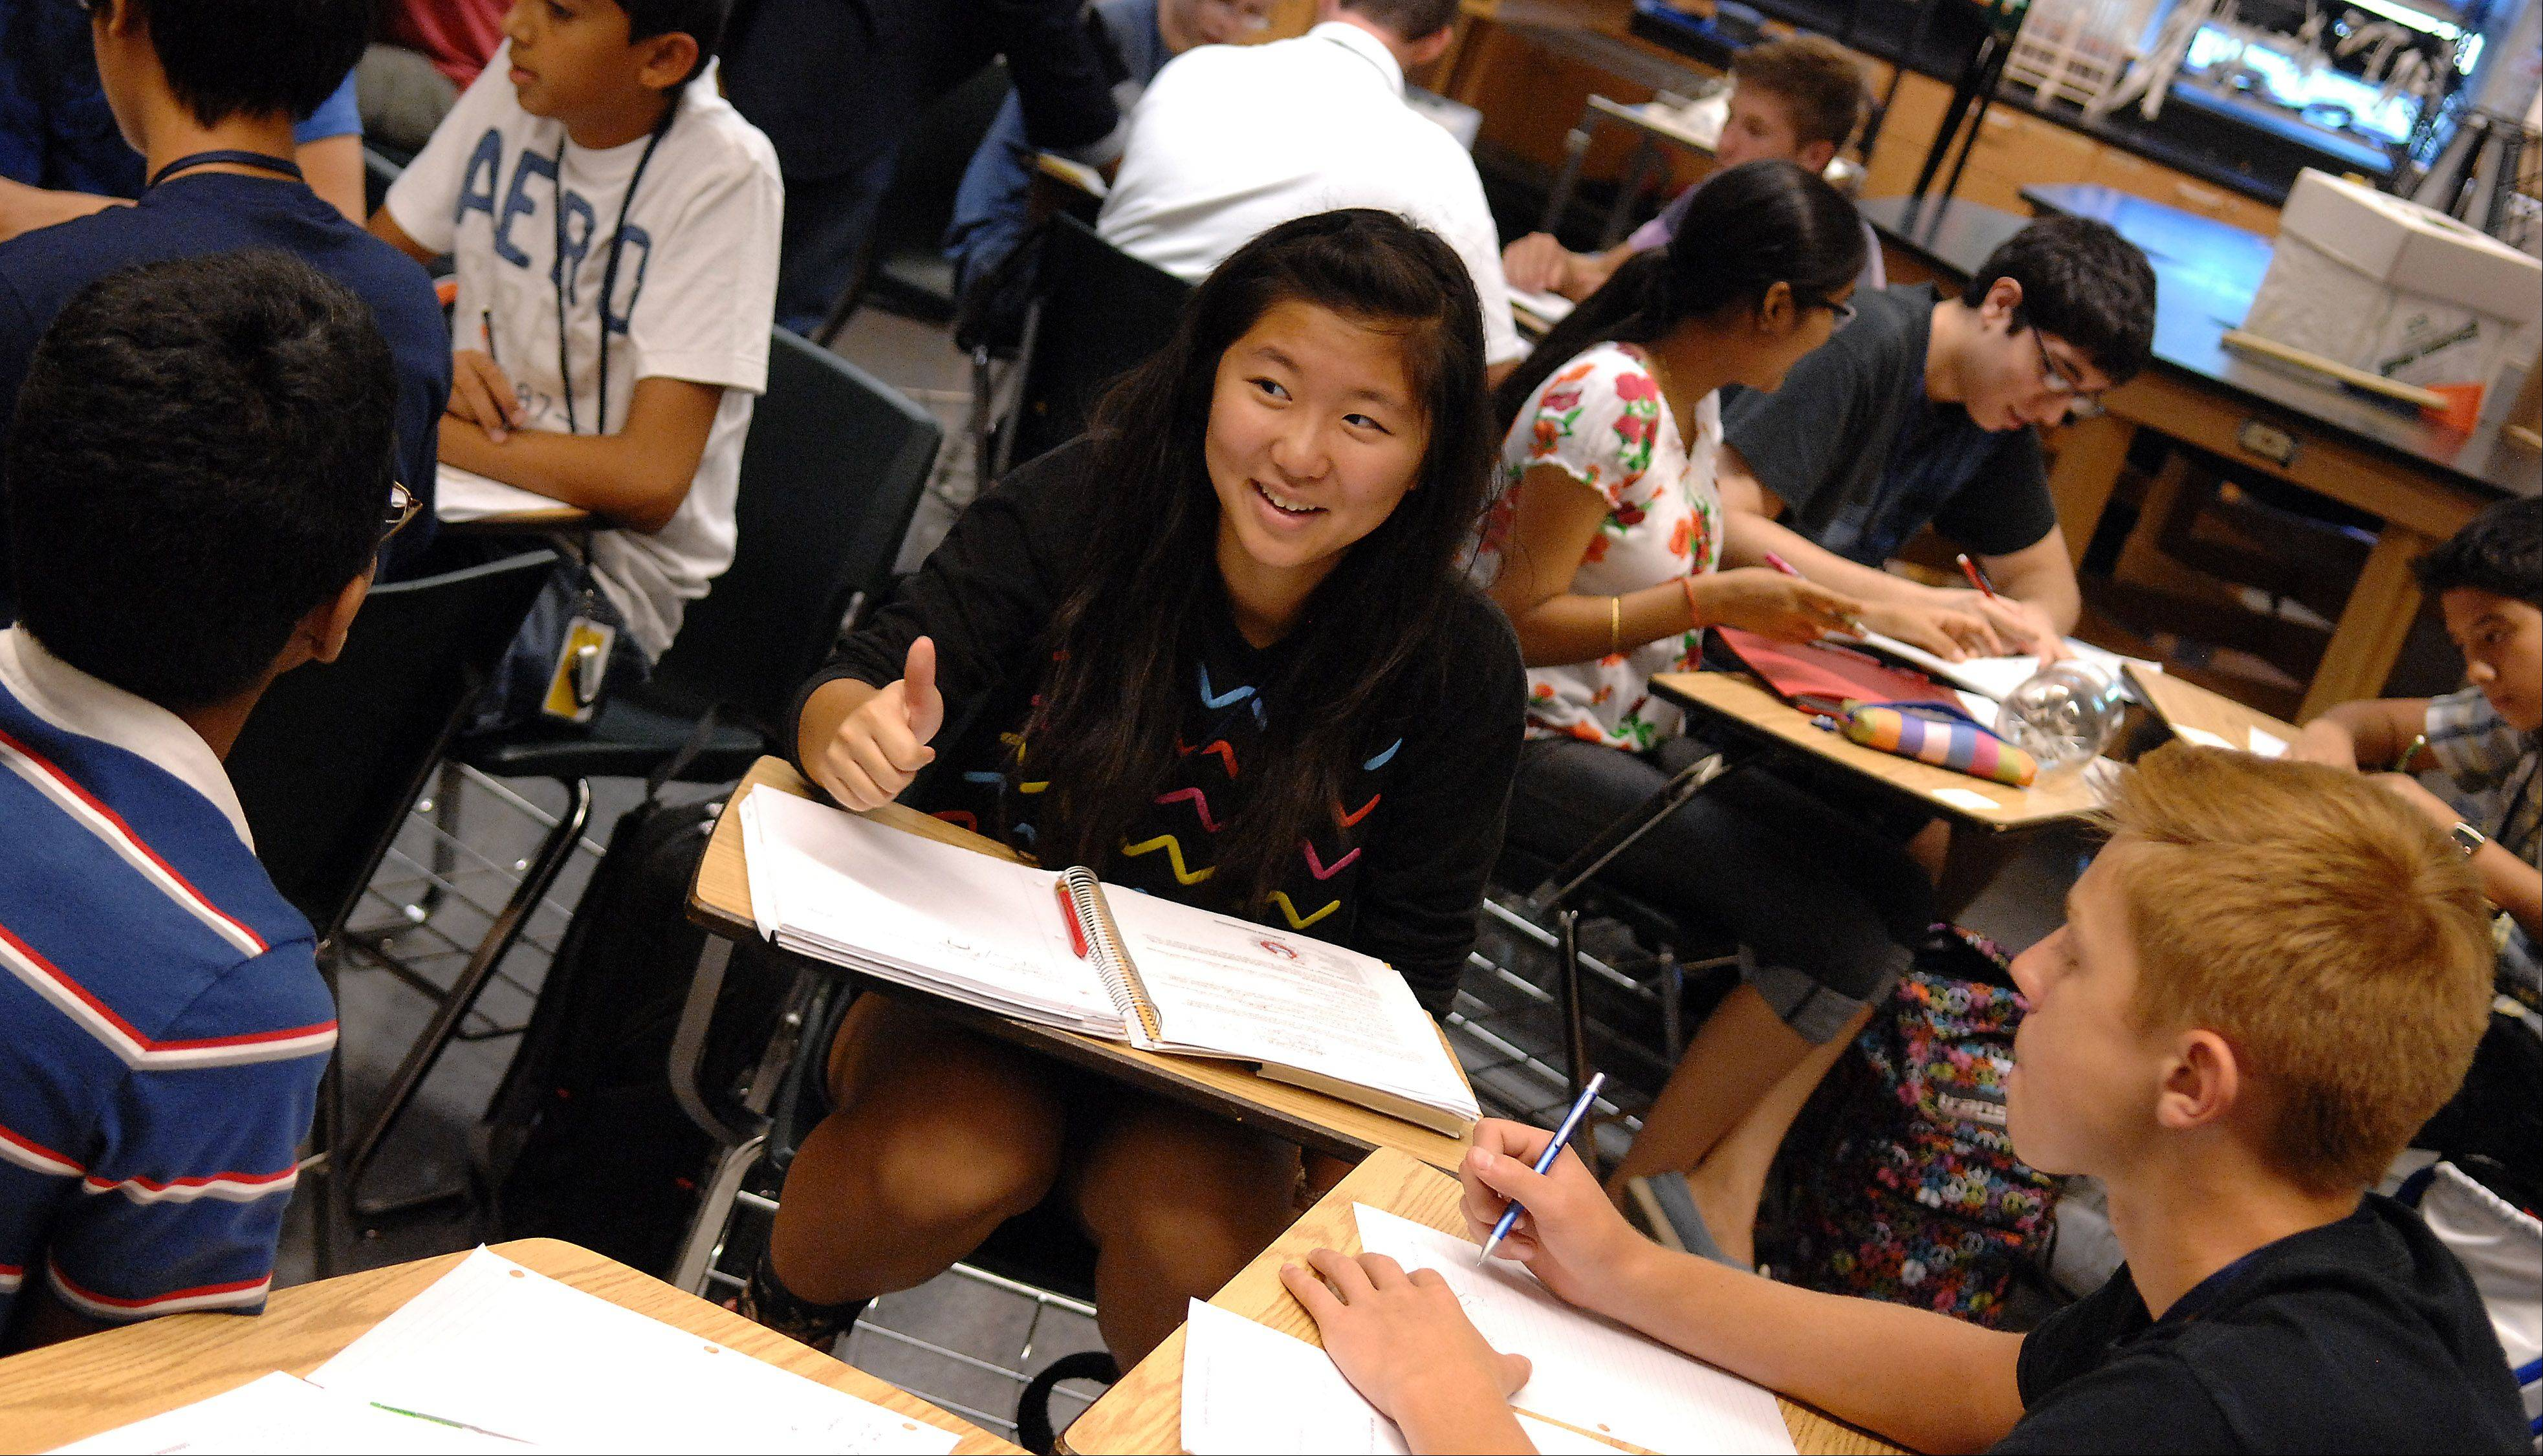 Autumn Chung works in a small group during a freshman biology class at the Academy of Science, Engineering and Technology housed at Bartlett High School.